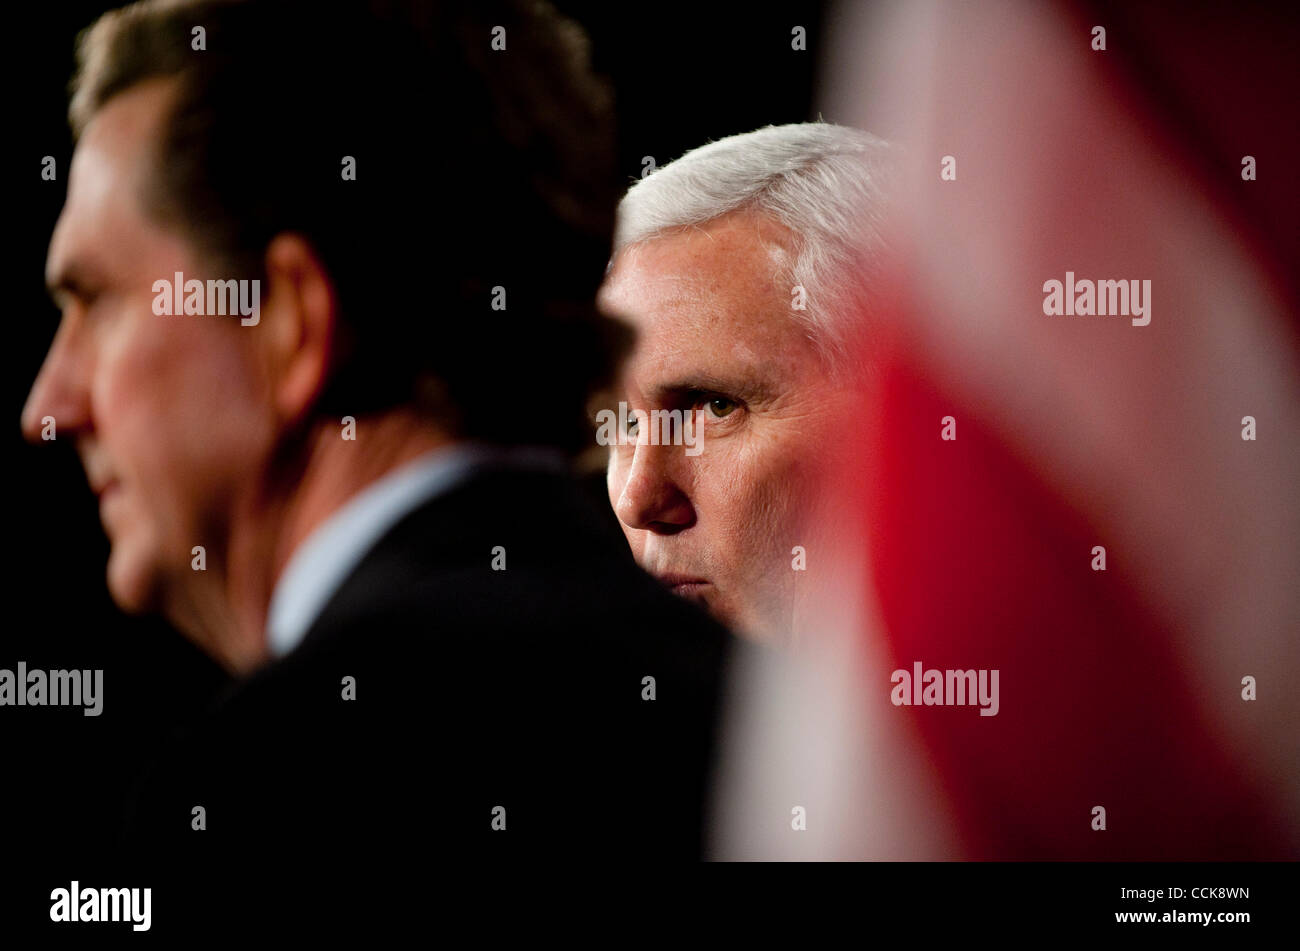 Dec 2, 2010 - Washington, District of Columbia, Senator. JIM DEMINT, (R-SC) and House Republican Conference Chairman - Stock Image